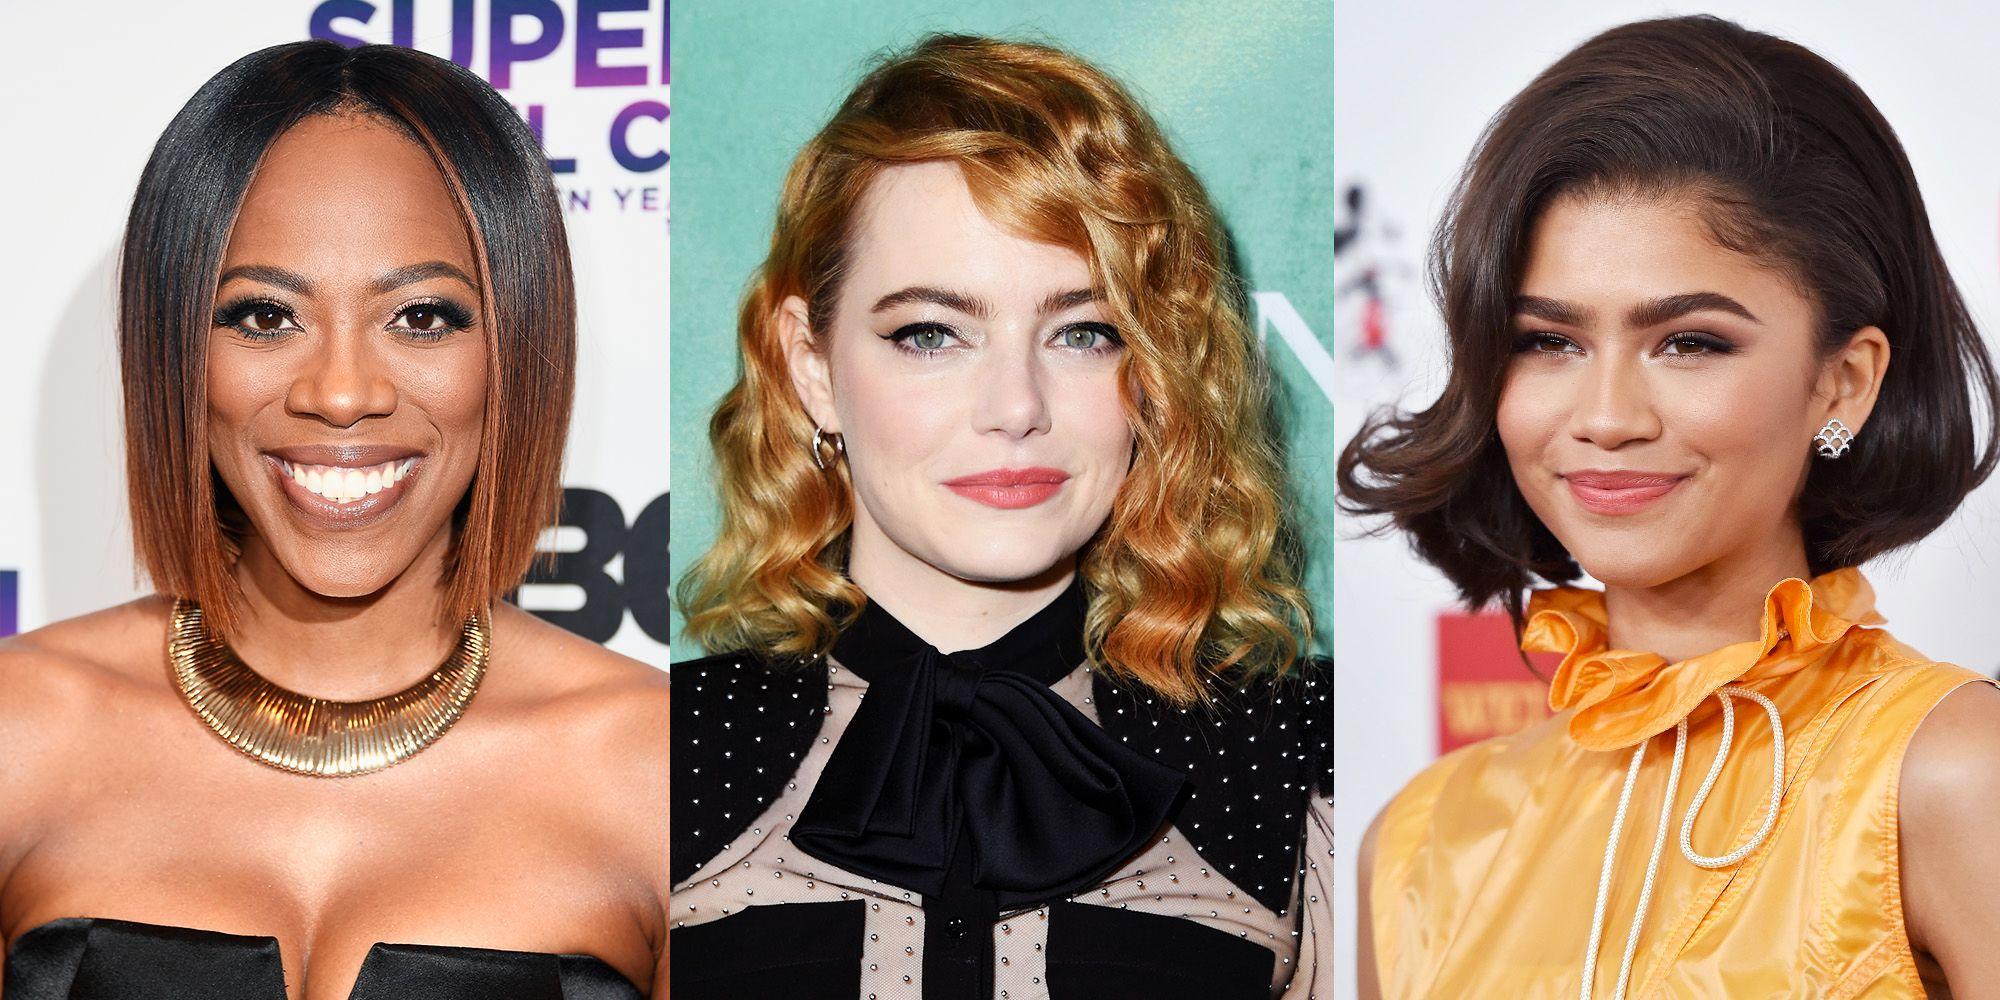 5 Cute Fall Haircuts For 2018 Best New Autumn Hairstyles And Trends